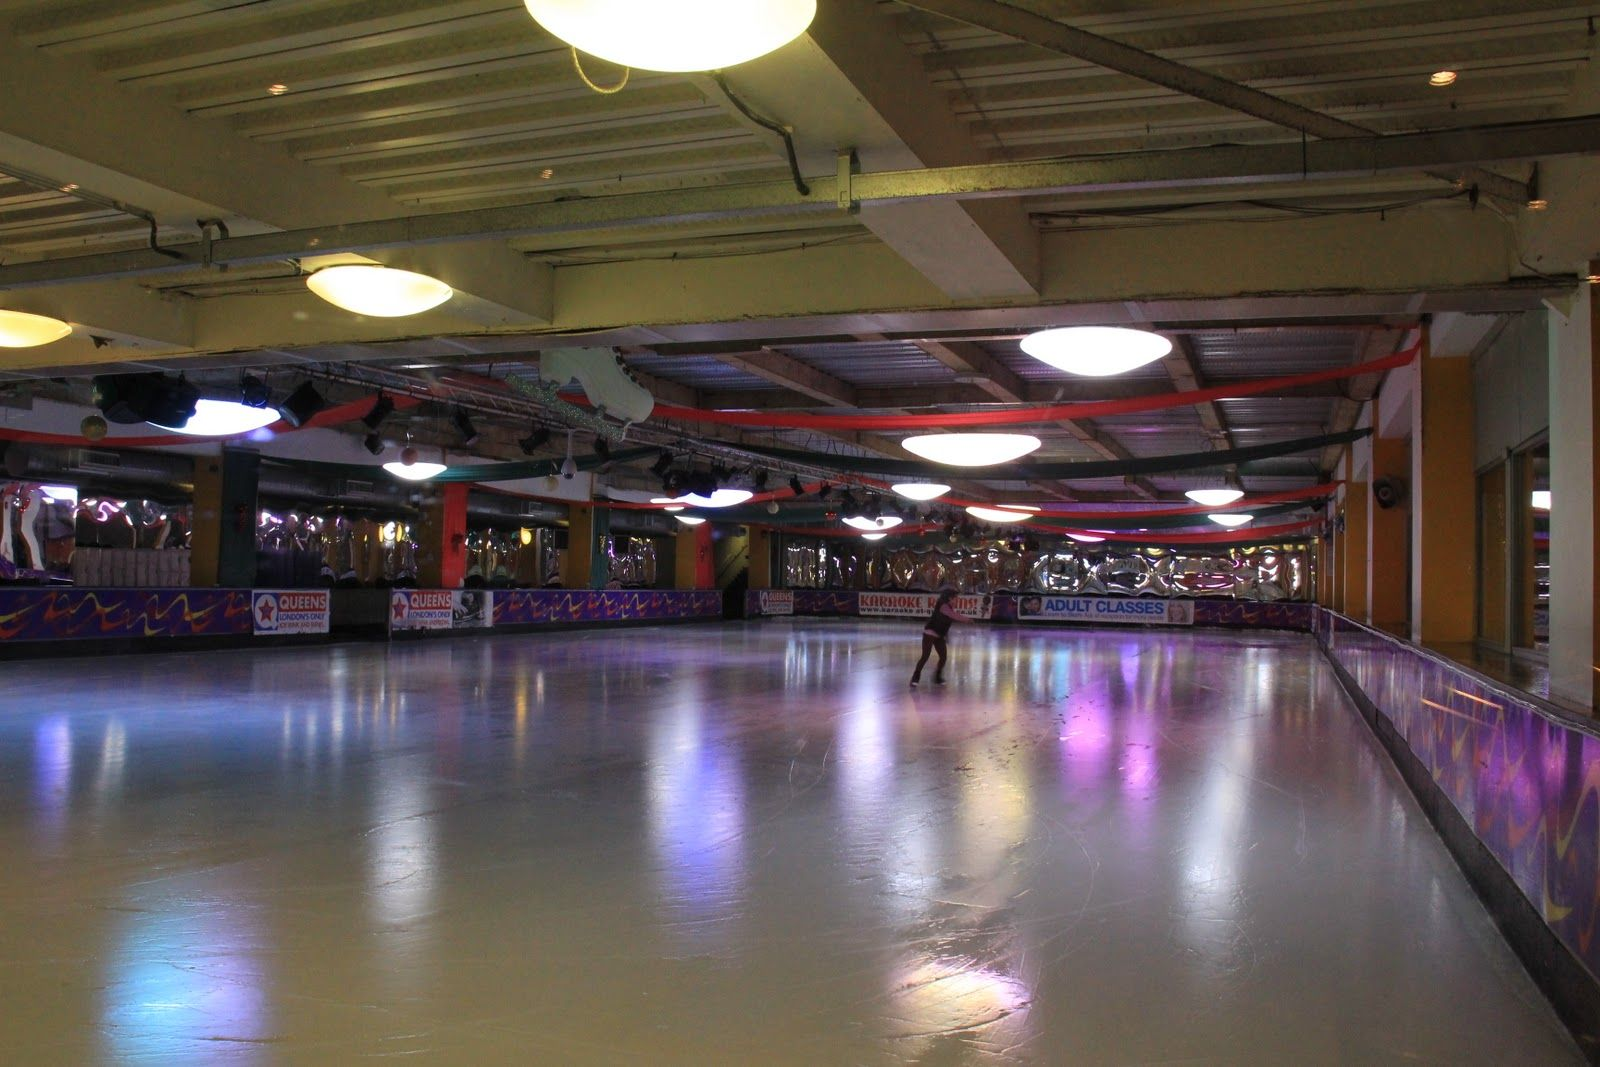 Usa roller skating rink queens - Queens Ice Skating Rink Queensway Not The Best Rink In The World But